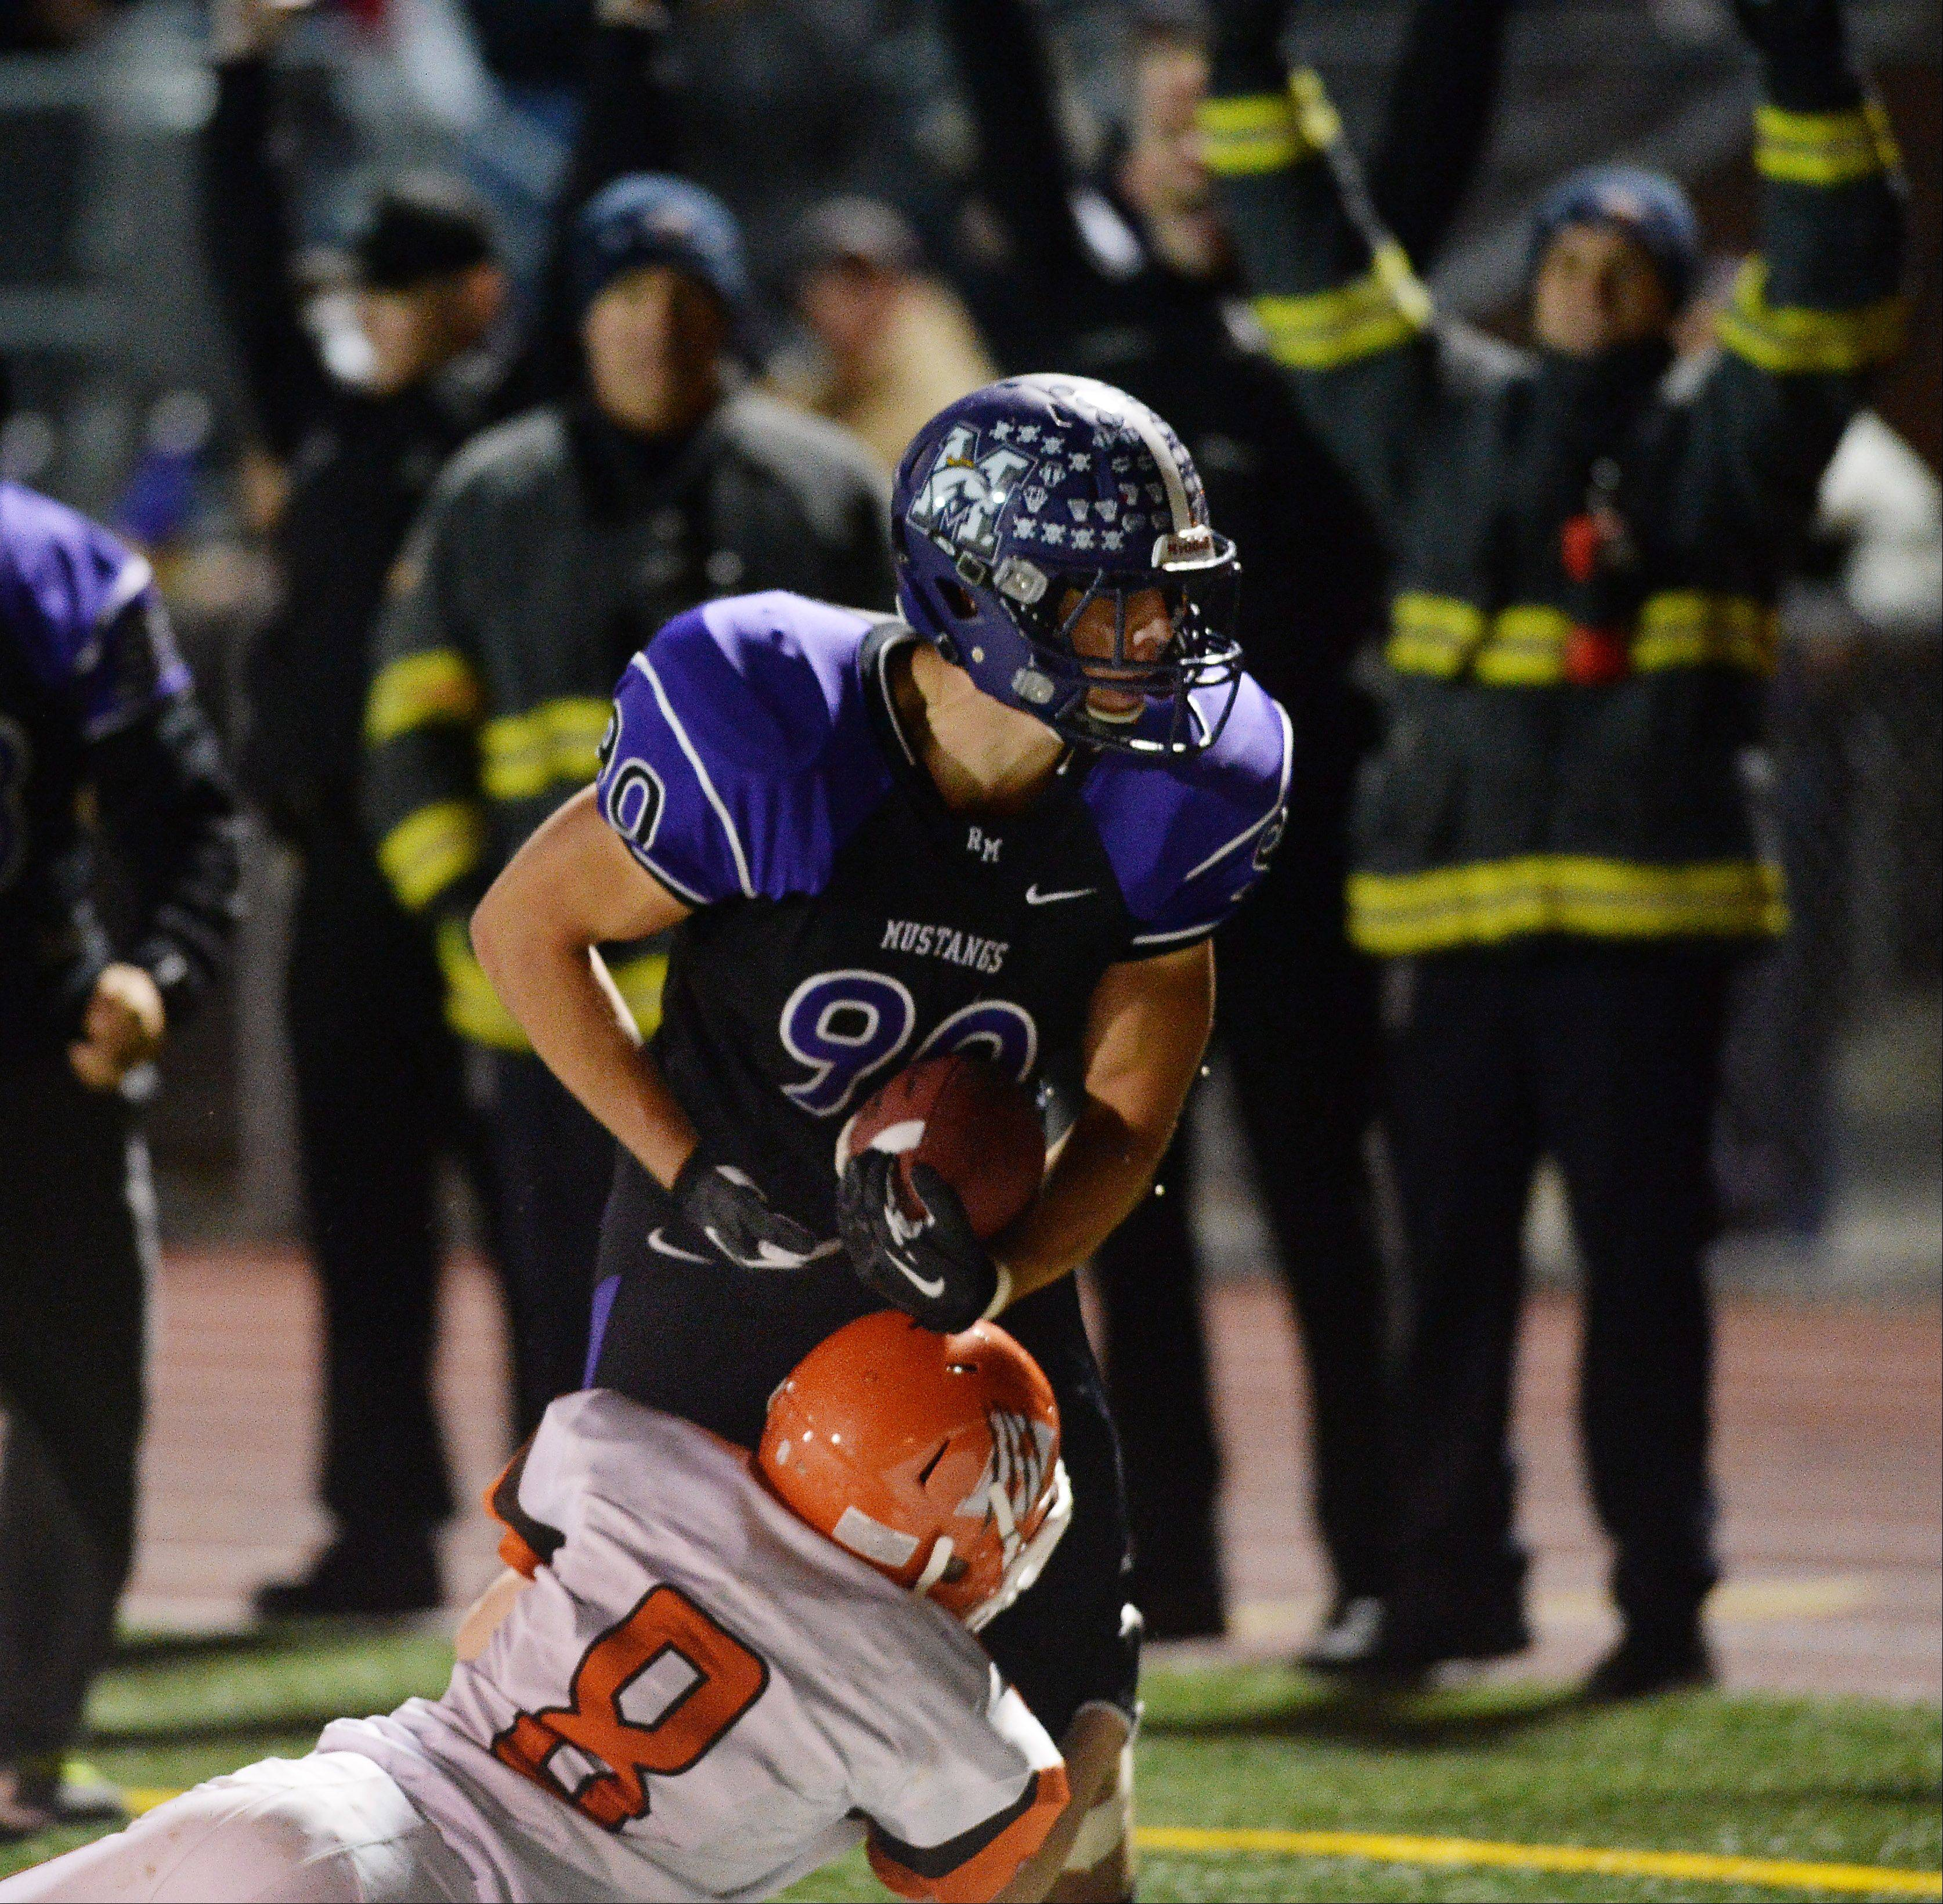 Rolling Meadows' Matt Campbell runs on a pass play in the fourth quarter with seconds left make a catch in the end zone to beat Hersey 24-21 .